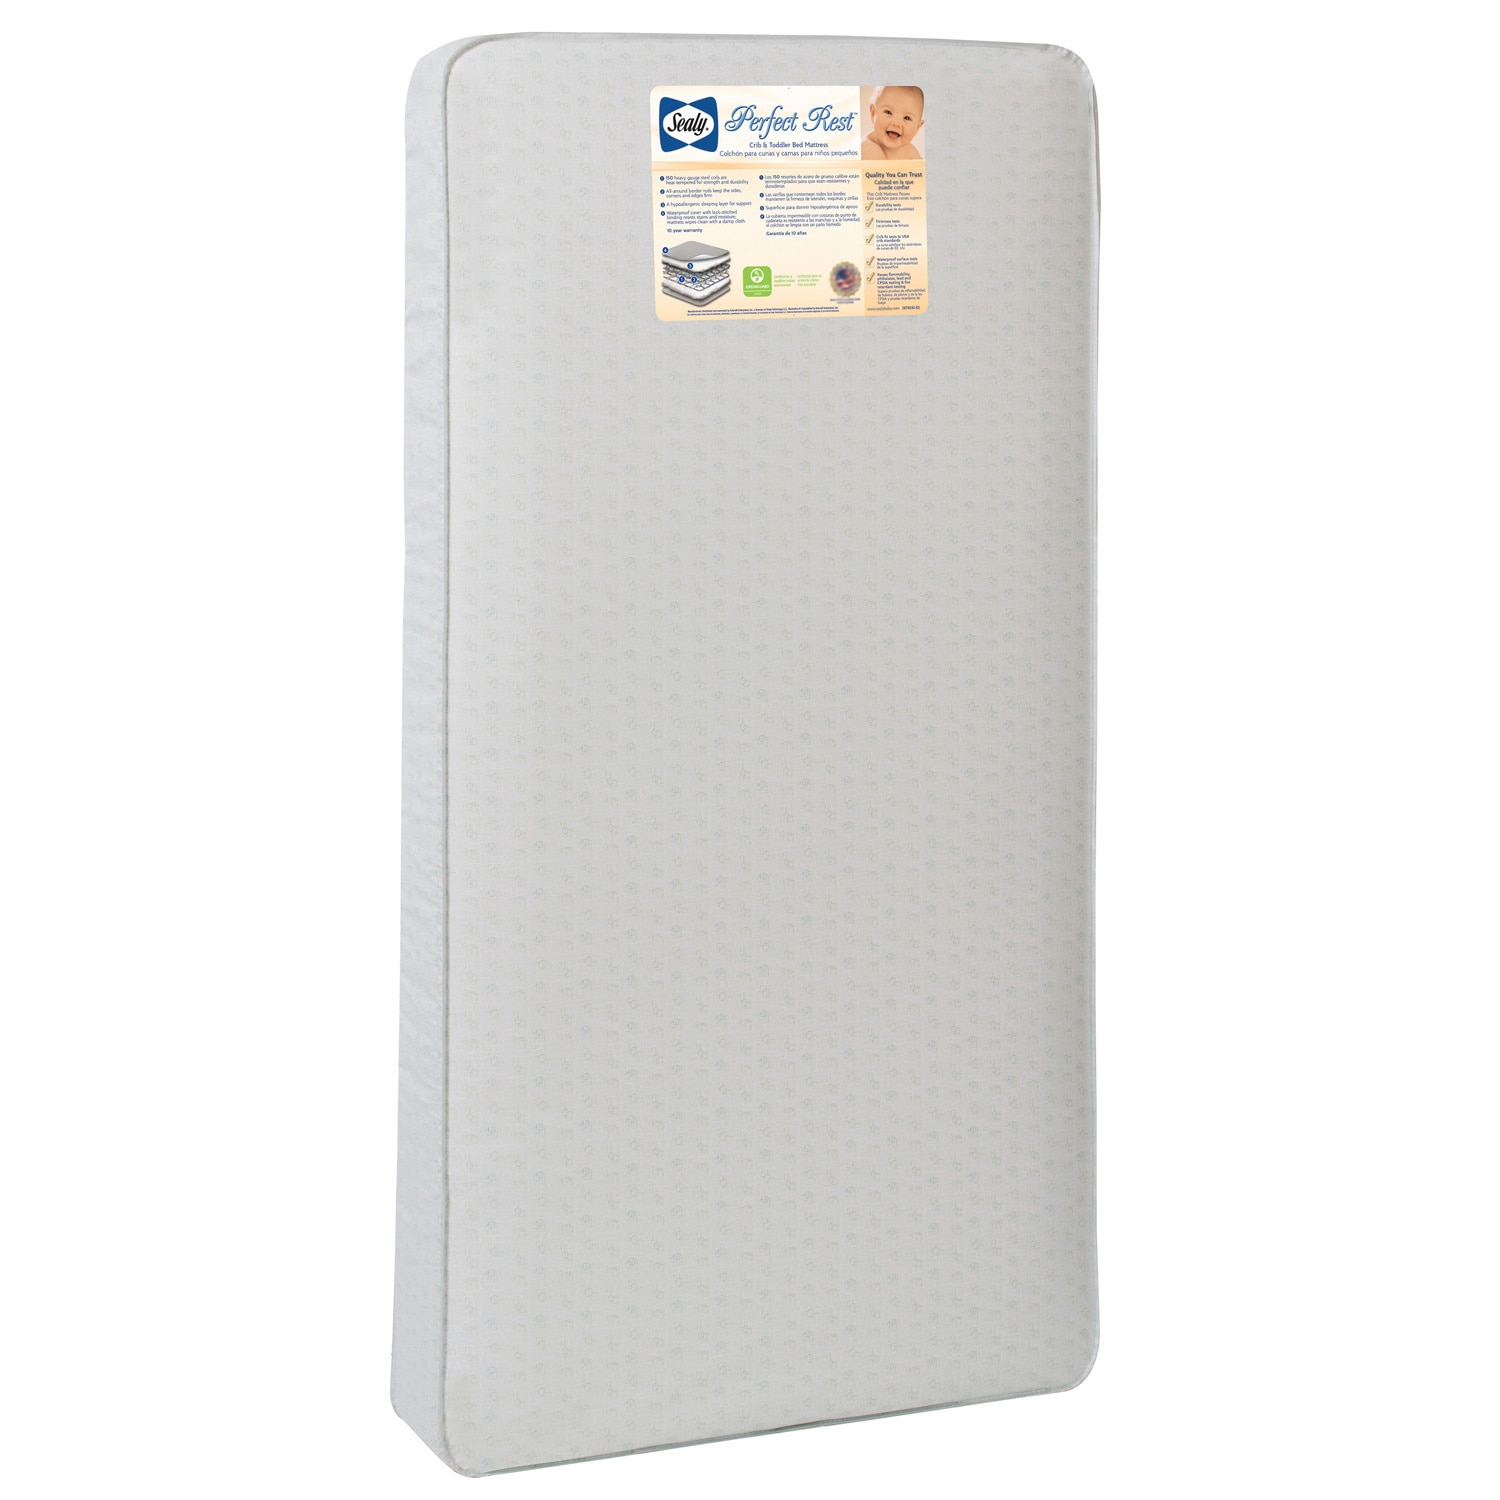 Sealy Perfect Rest 150-coil Infant/ Toddler Crib Mattress...